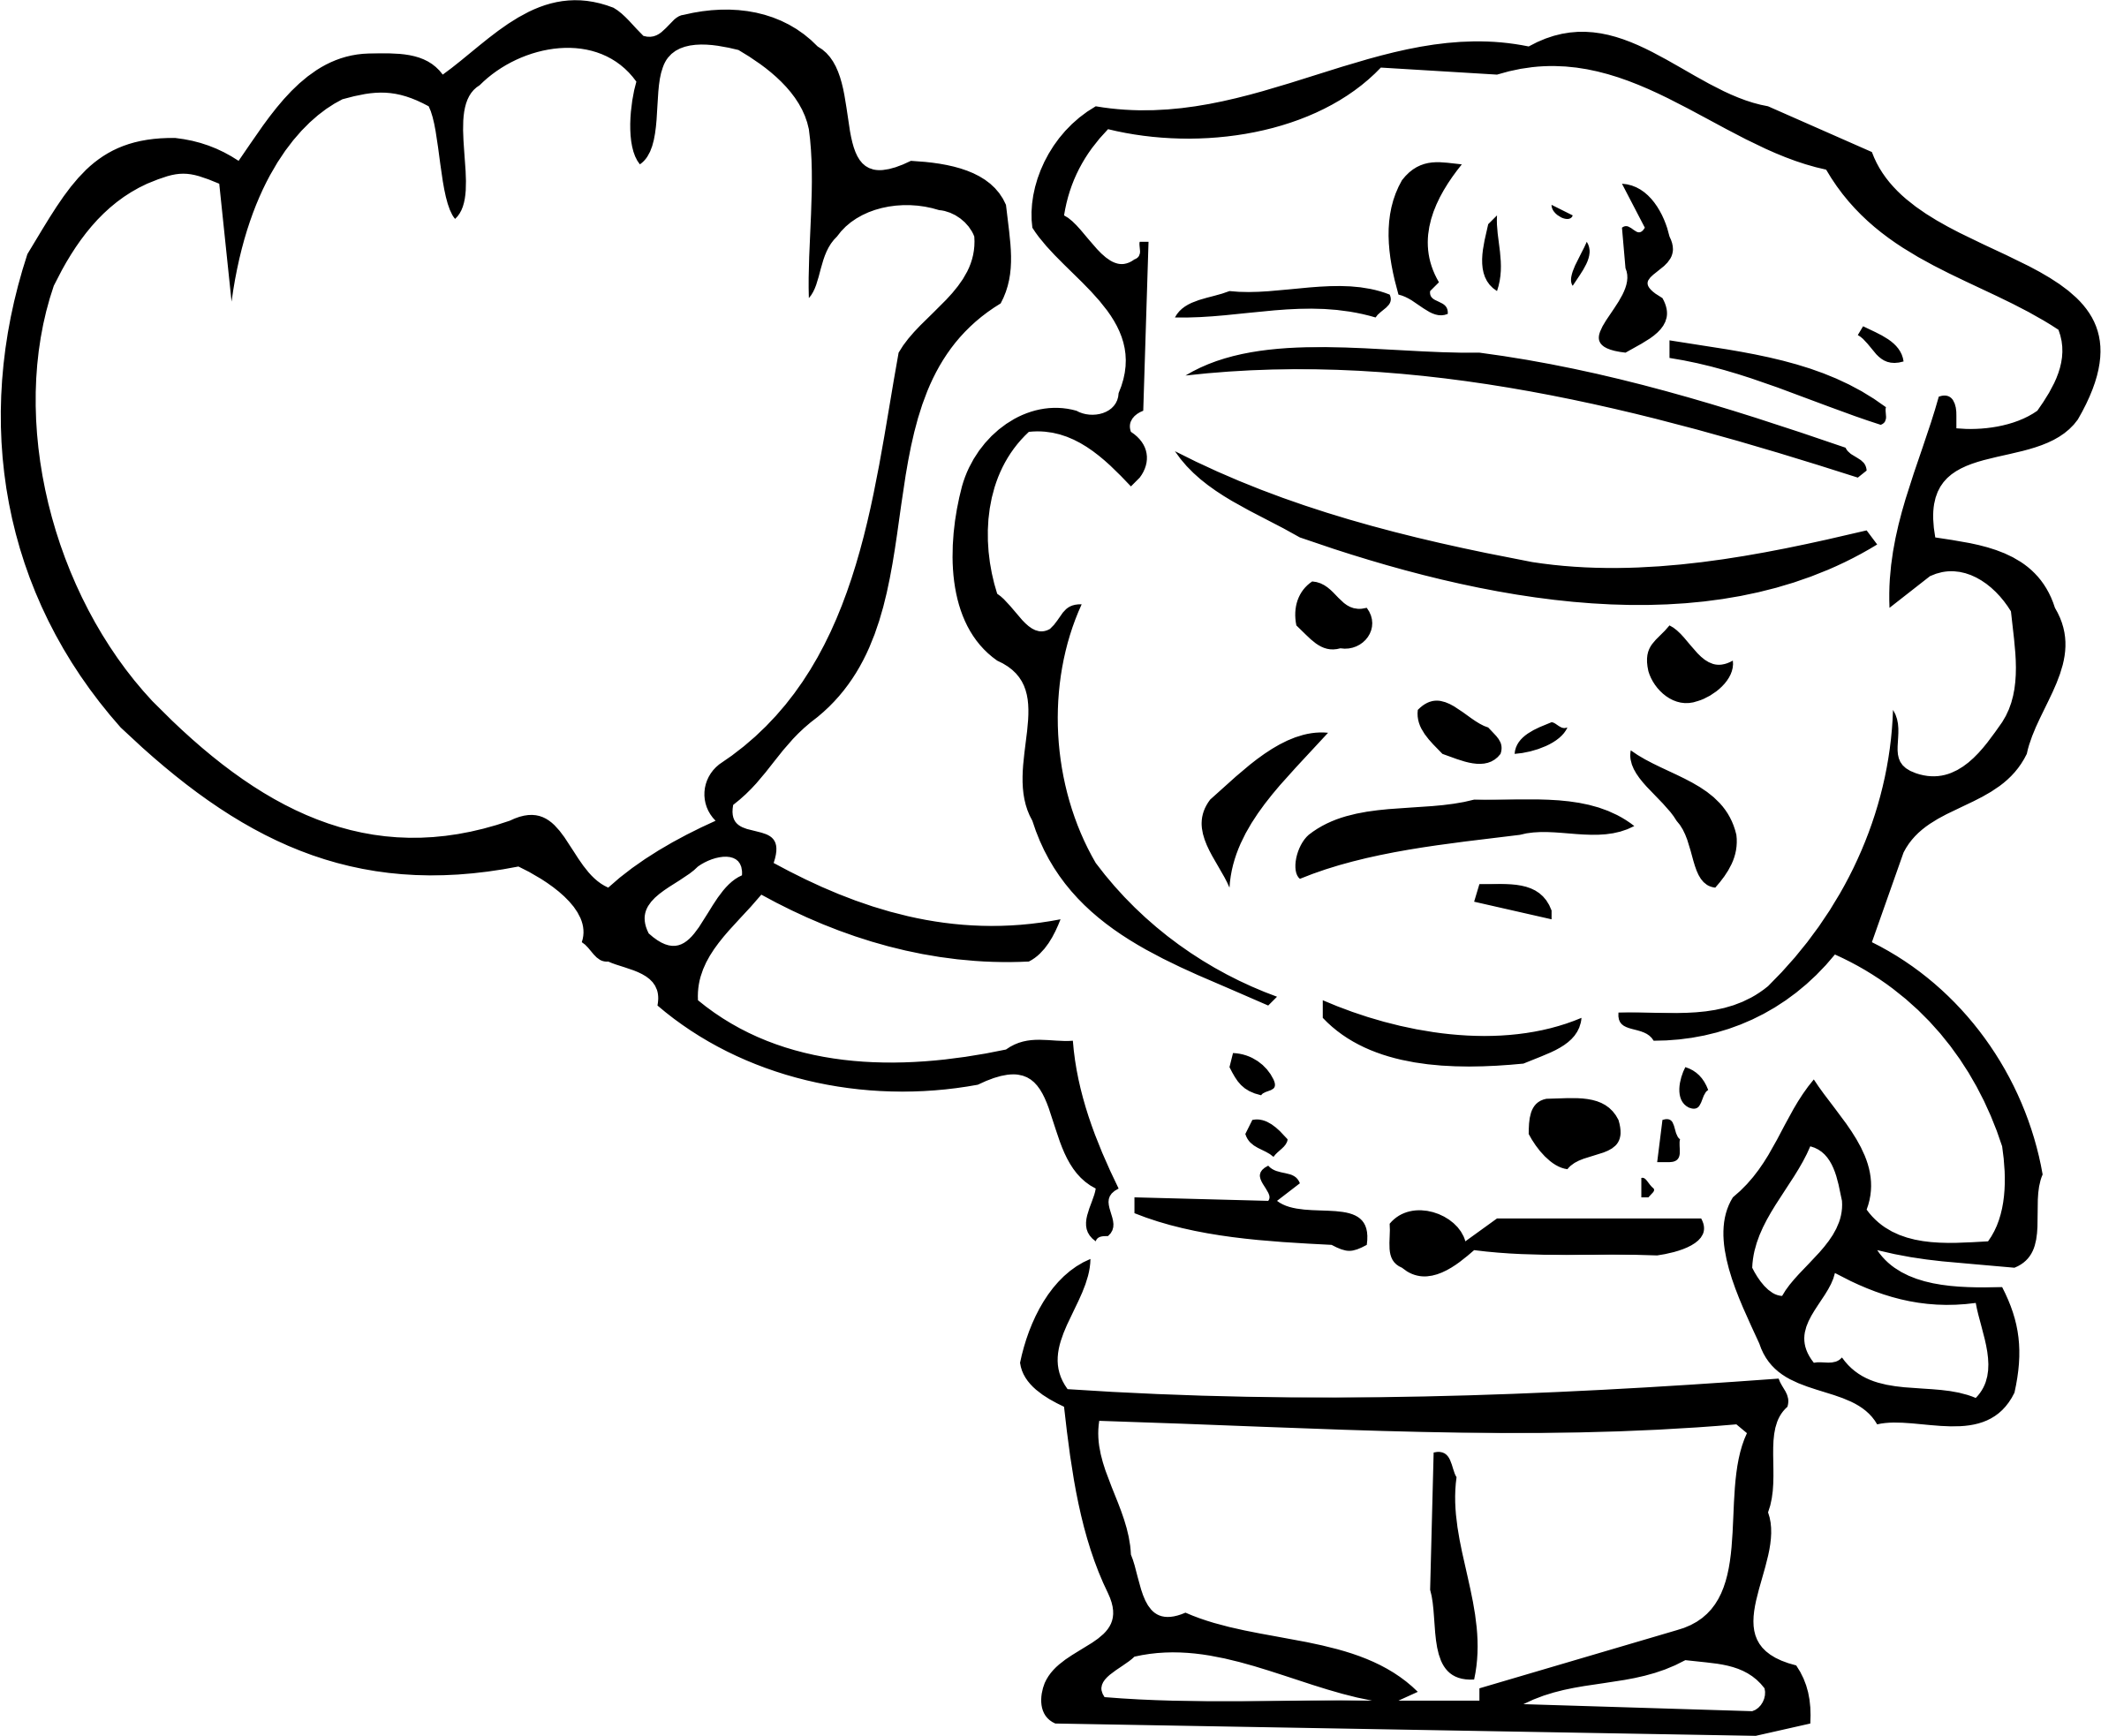 jpg library download Cop clipart black and white. The traffic big image.